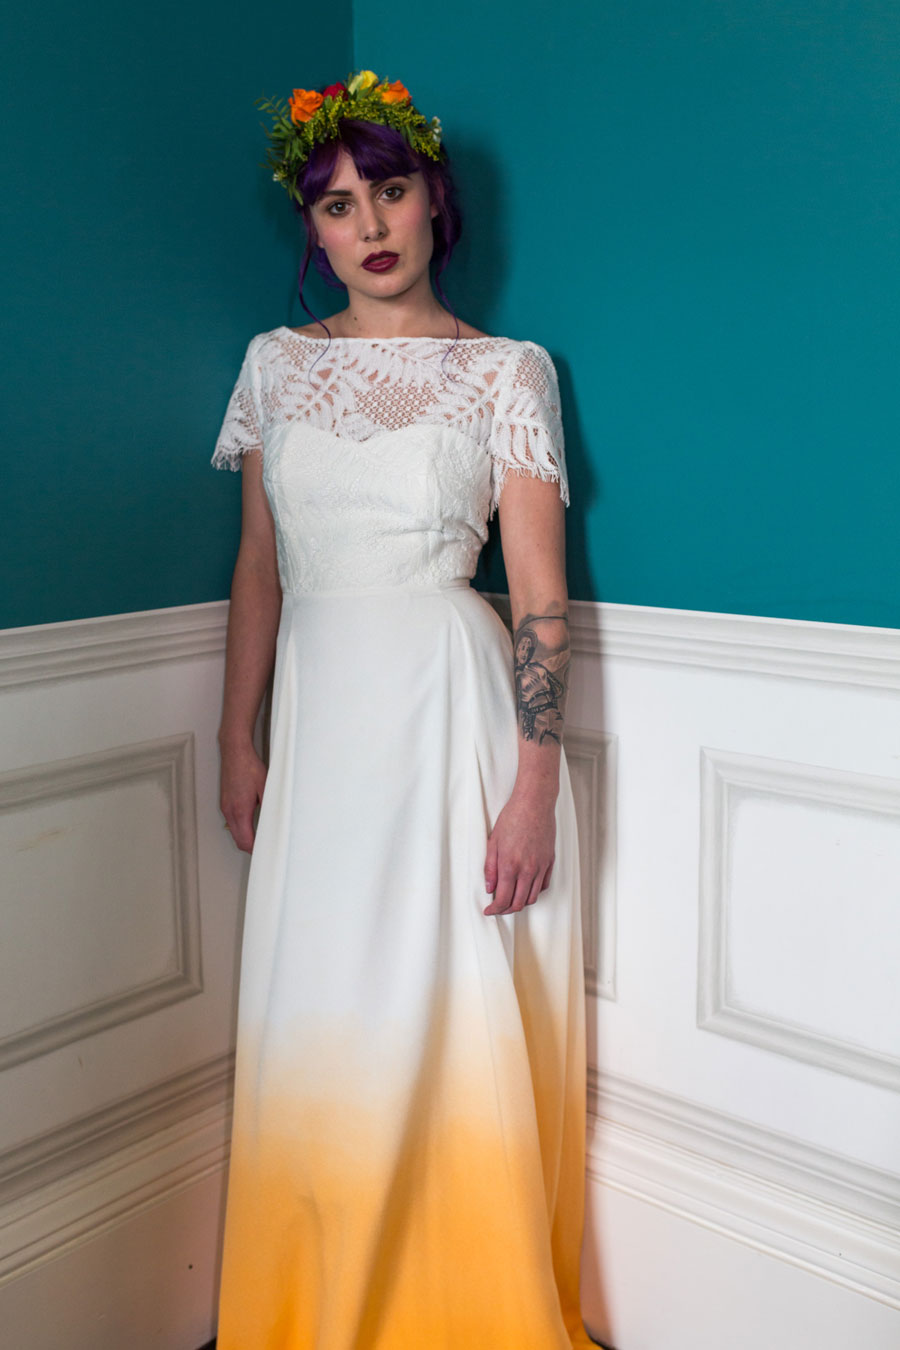 Colourful quirky wedding dresses for non traditional for Non traditional wedding dresses